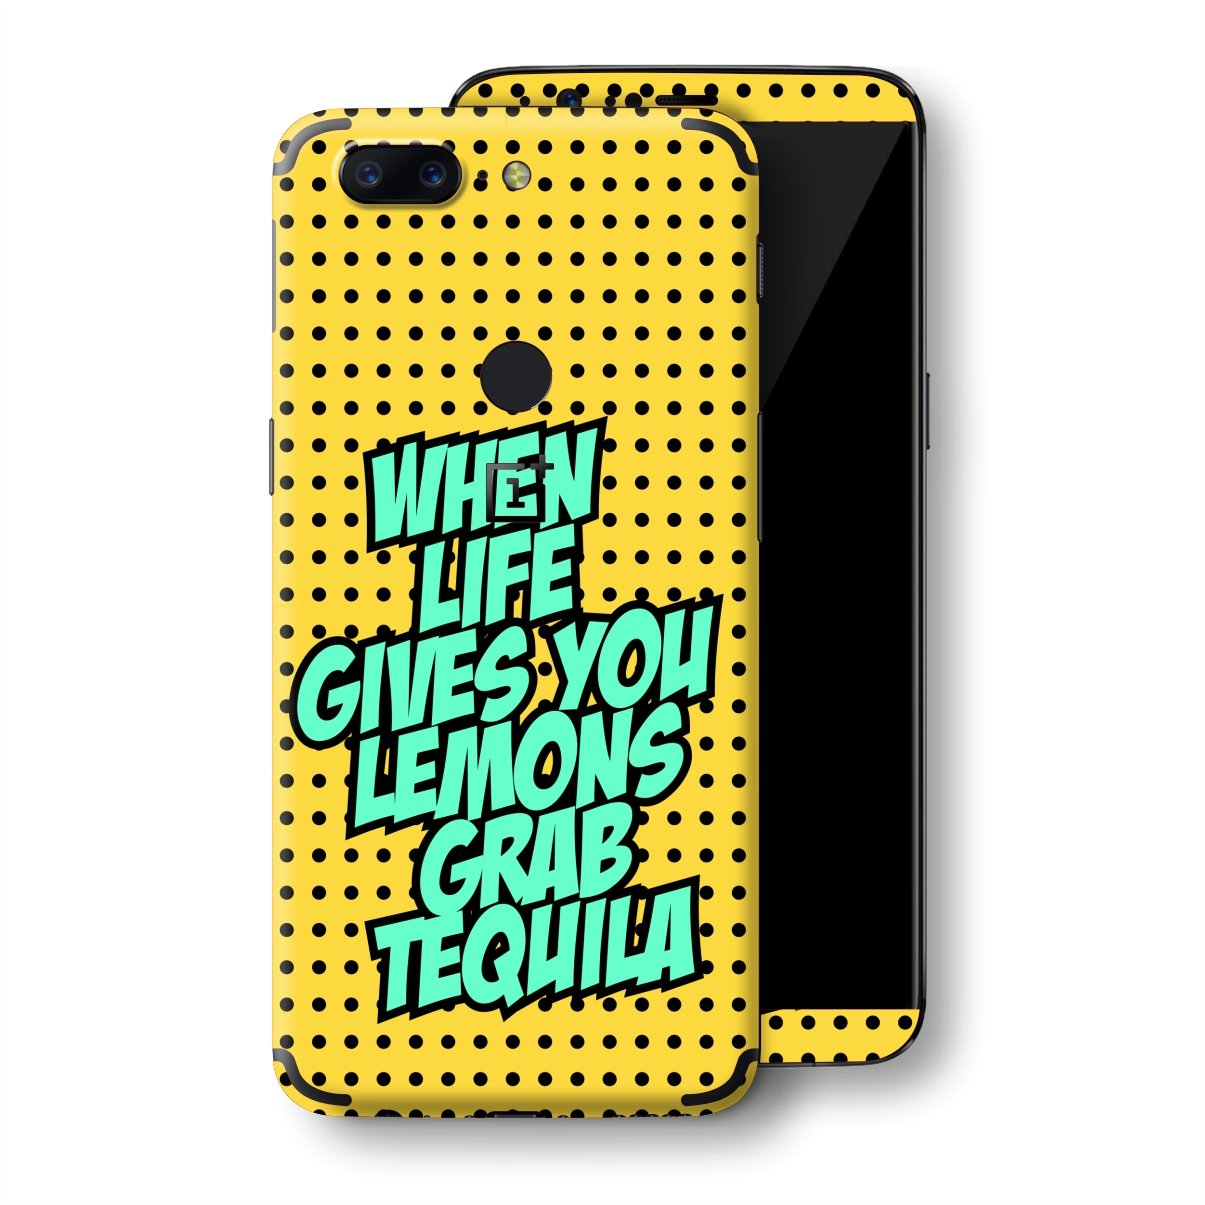 OnePlus 5T Pop Art Quotes When Life Gives You Lemons Grab Tequila Skin, Decal, Wrap, Protector, Cover by EasySkinz | EasySkinz.com